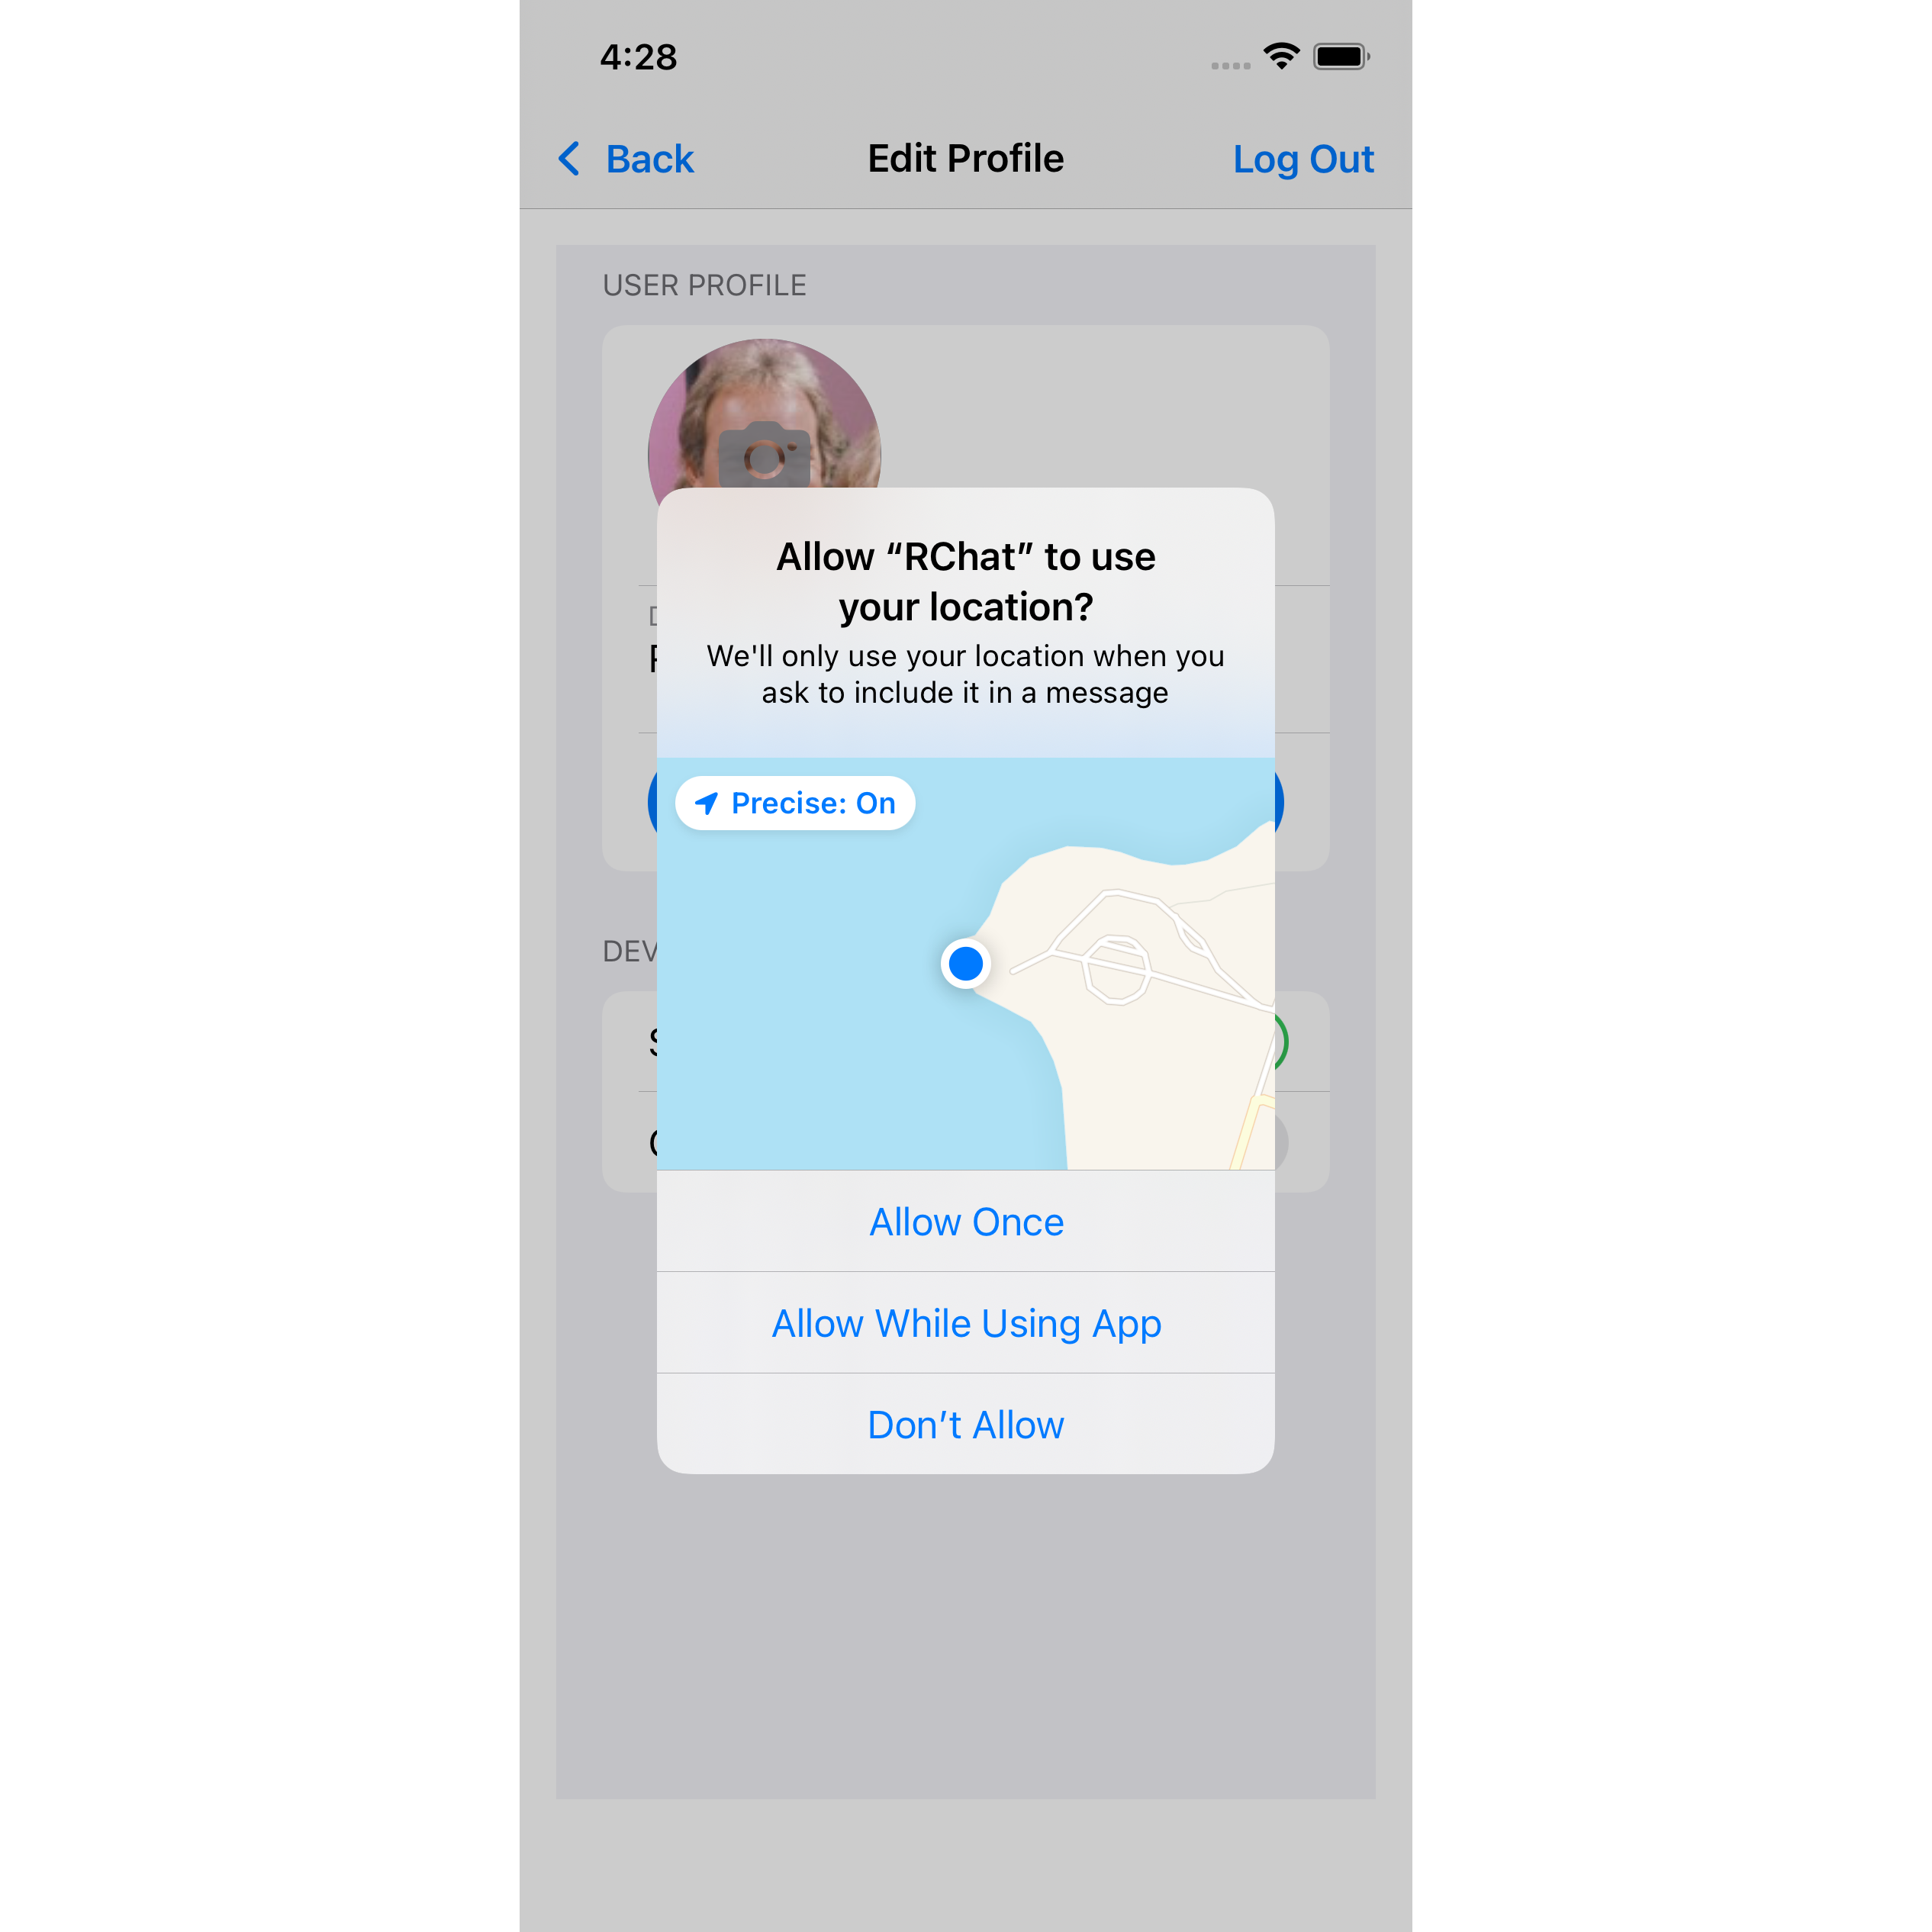 iPhone screenshot – app is requesting permission to access the user's location